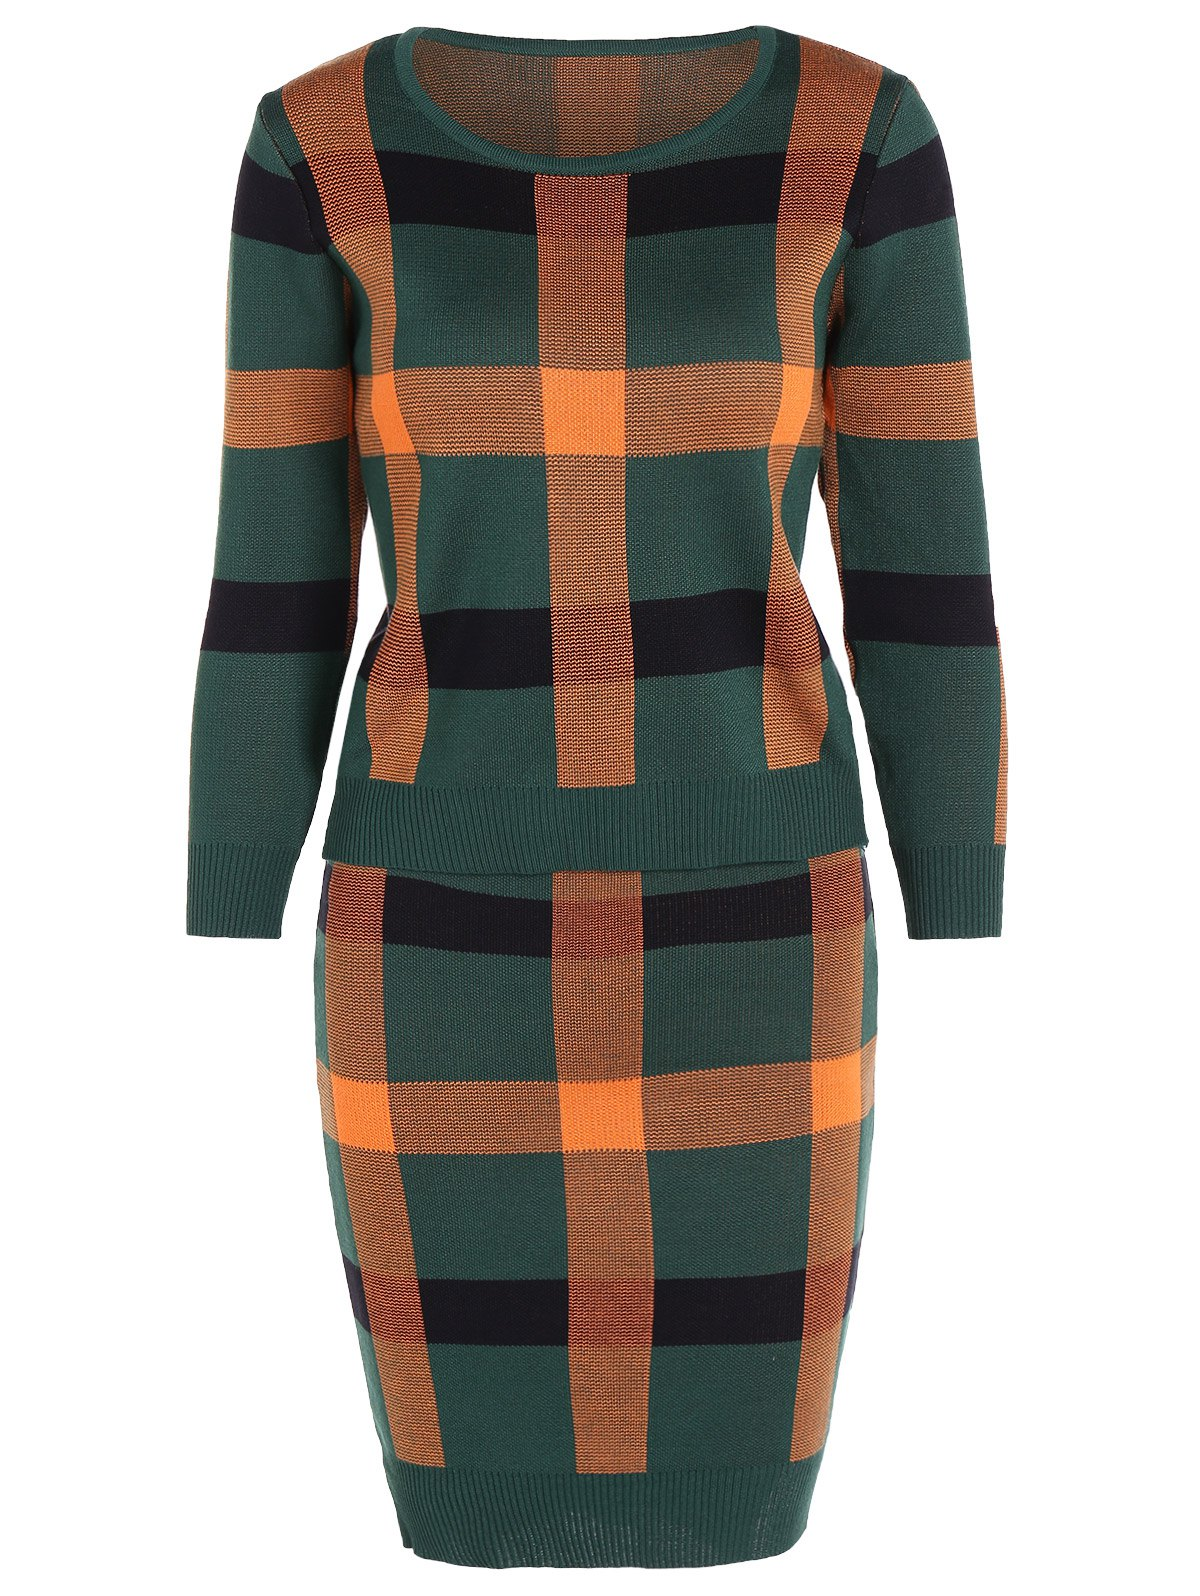 Knitted Plaid Two Piece Dress - GREEN ONE SIZE